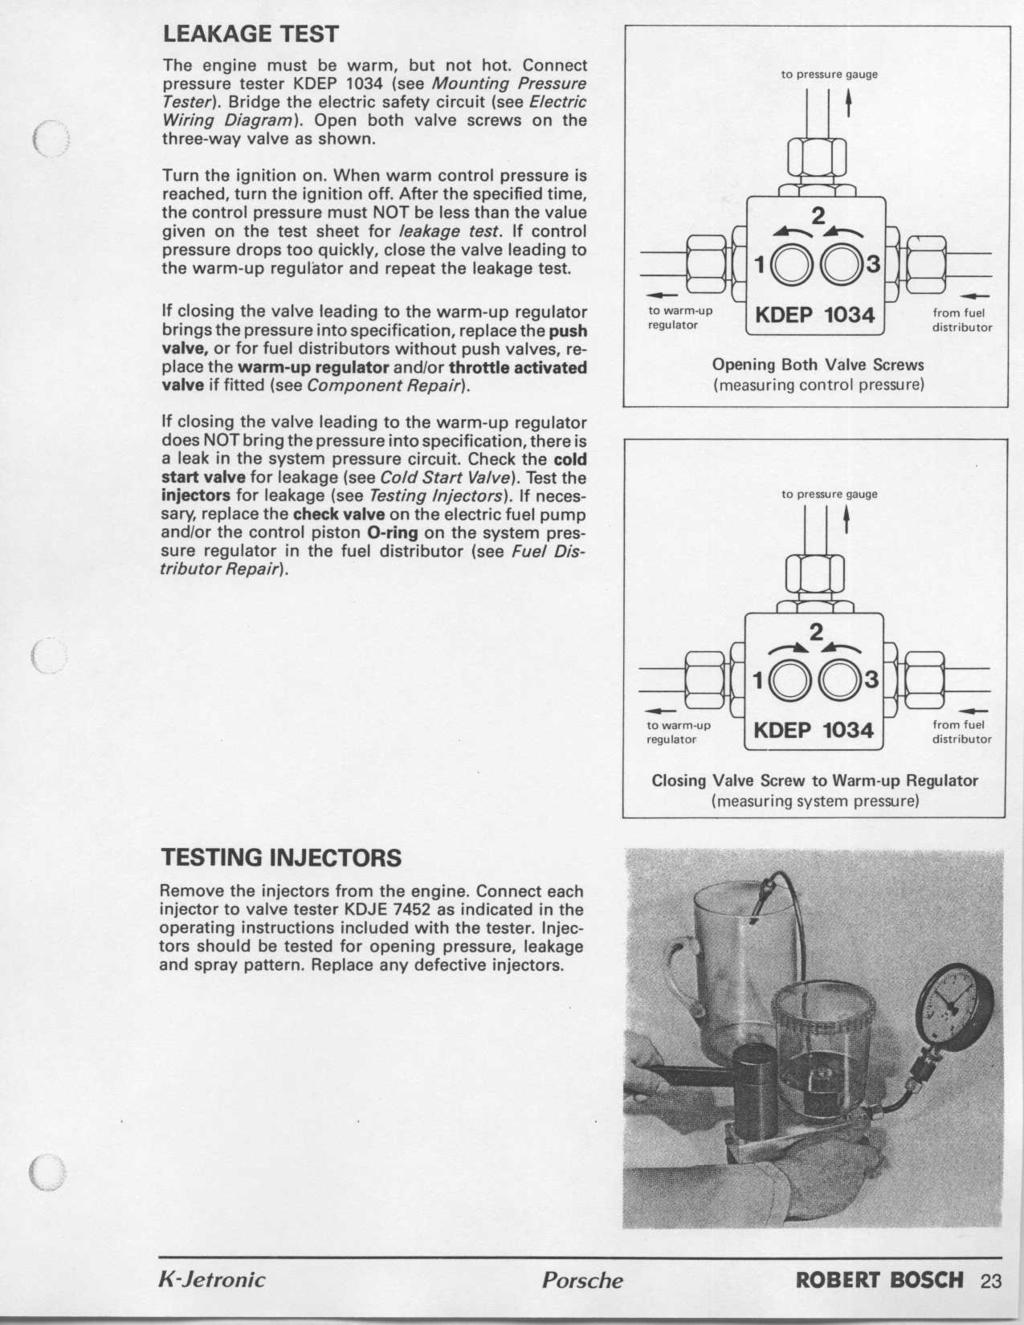 Workshop Manual Porsche K Jetronic Robert Bosch Pdf Vw Rabbit Gti Engines Further Fuel Pump Wiring Diagram On 1975 Beetle Leakage Test The Engine Must Be Warm But Not Hot Connect Pressure Tester Kdep